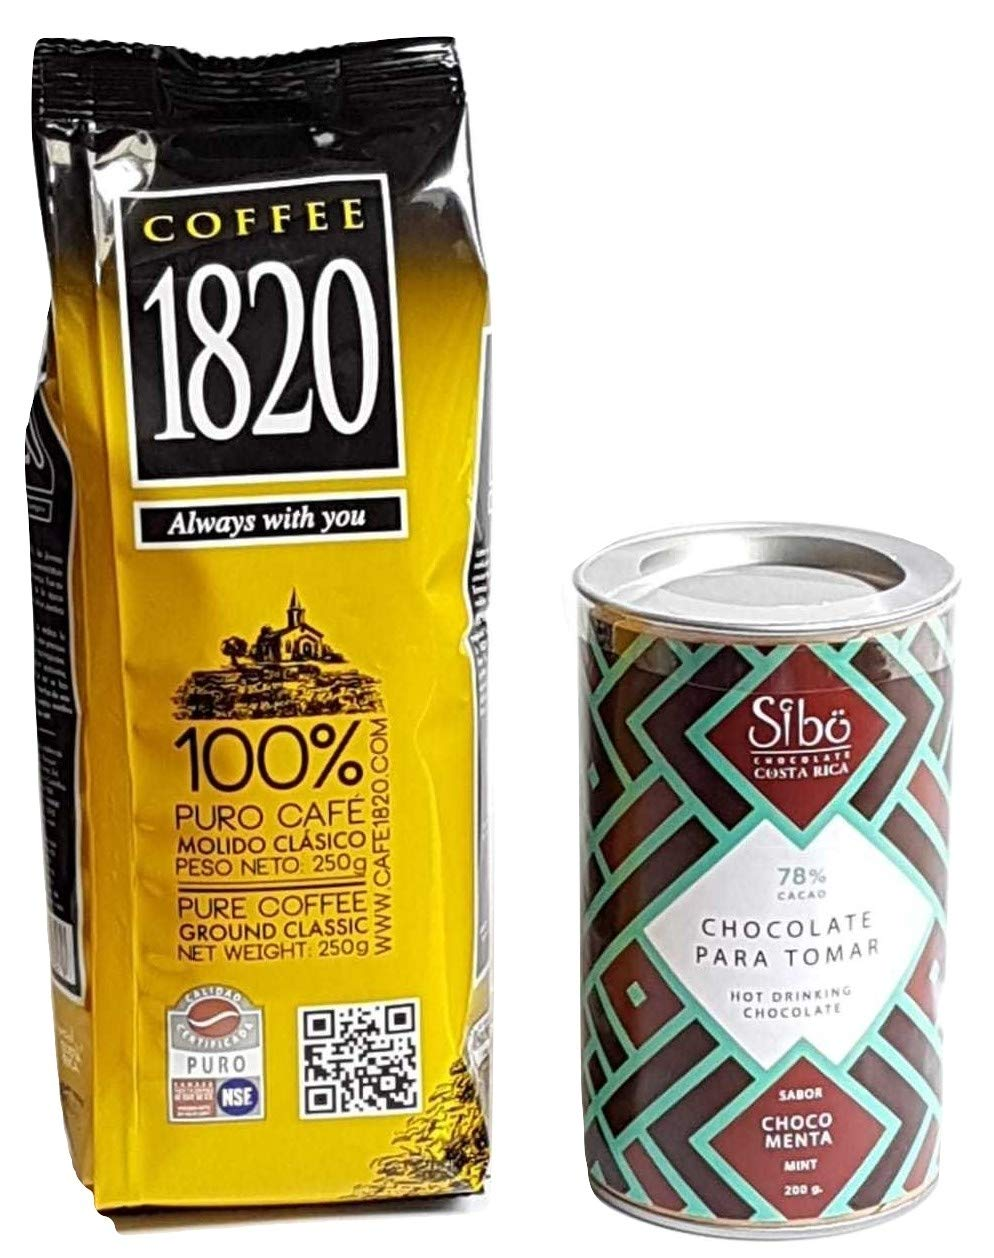 Cafe 1820 Costa Rican Coffee (250 gr) bundled with Sibu Mint ...